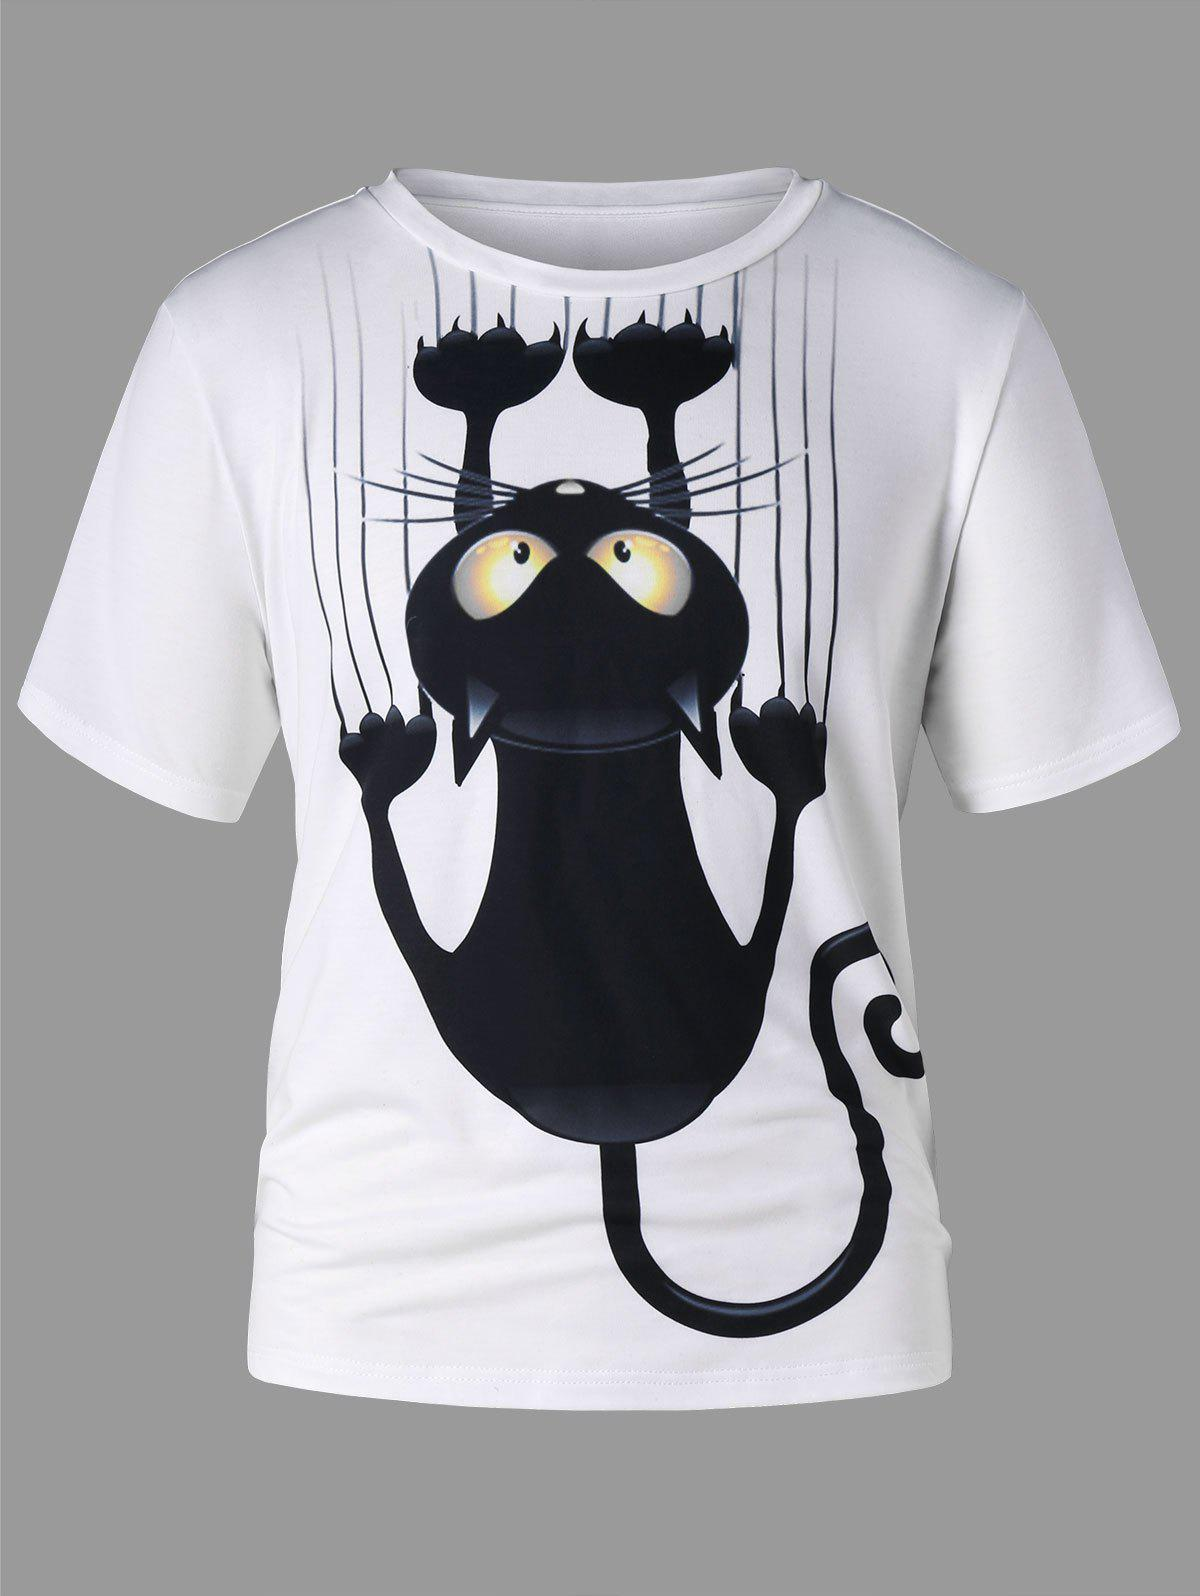 Shops Black Cat Print Short Sleeve T-shirt